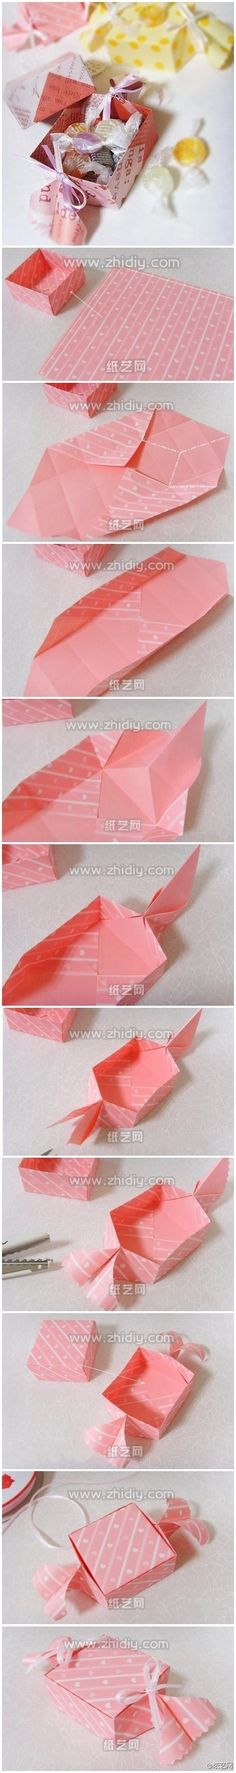 Candy paper folding